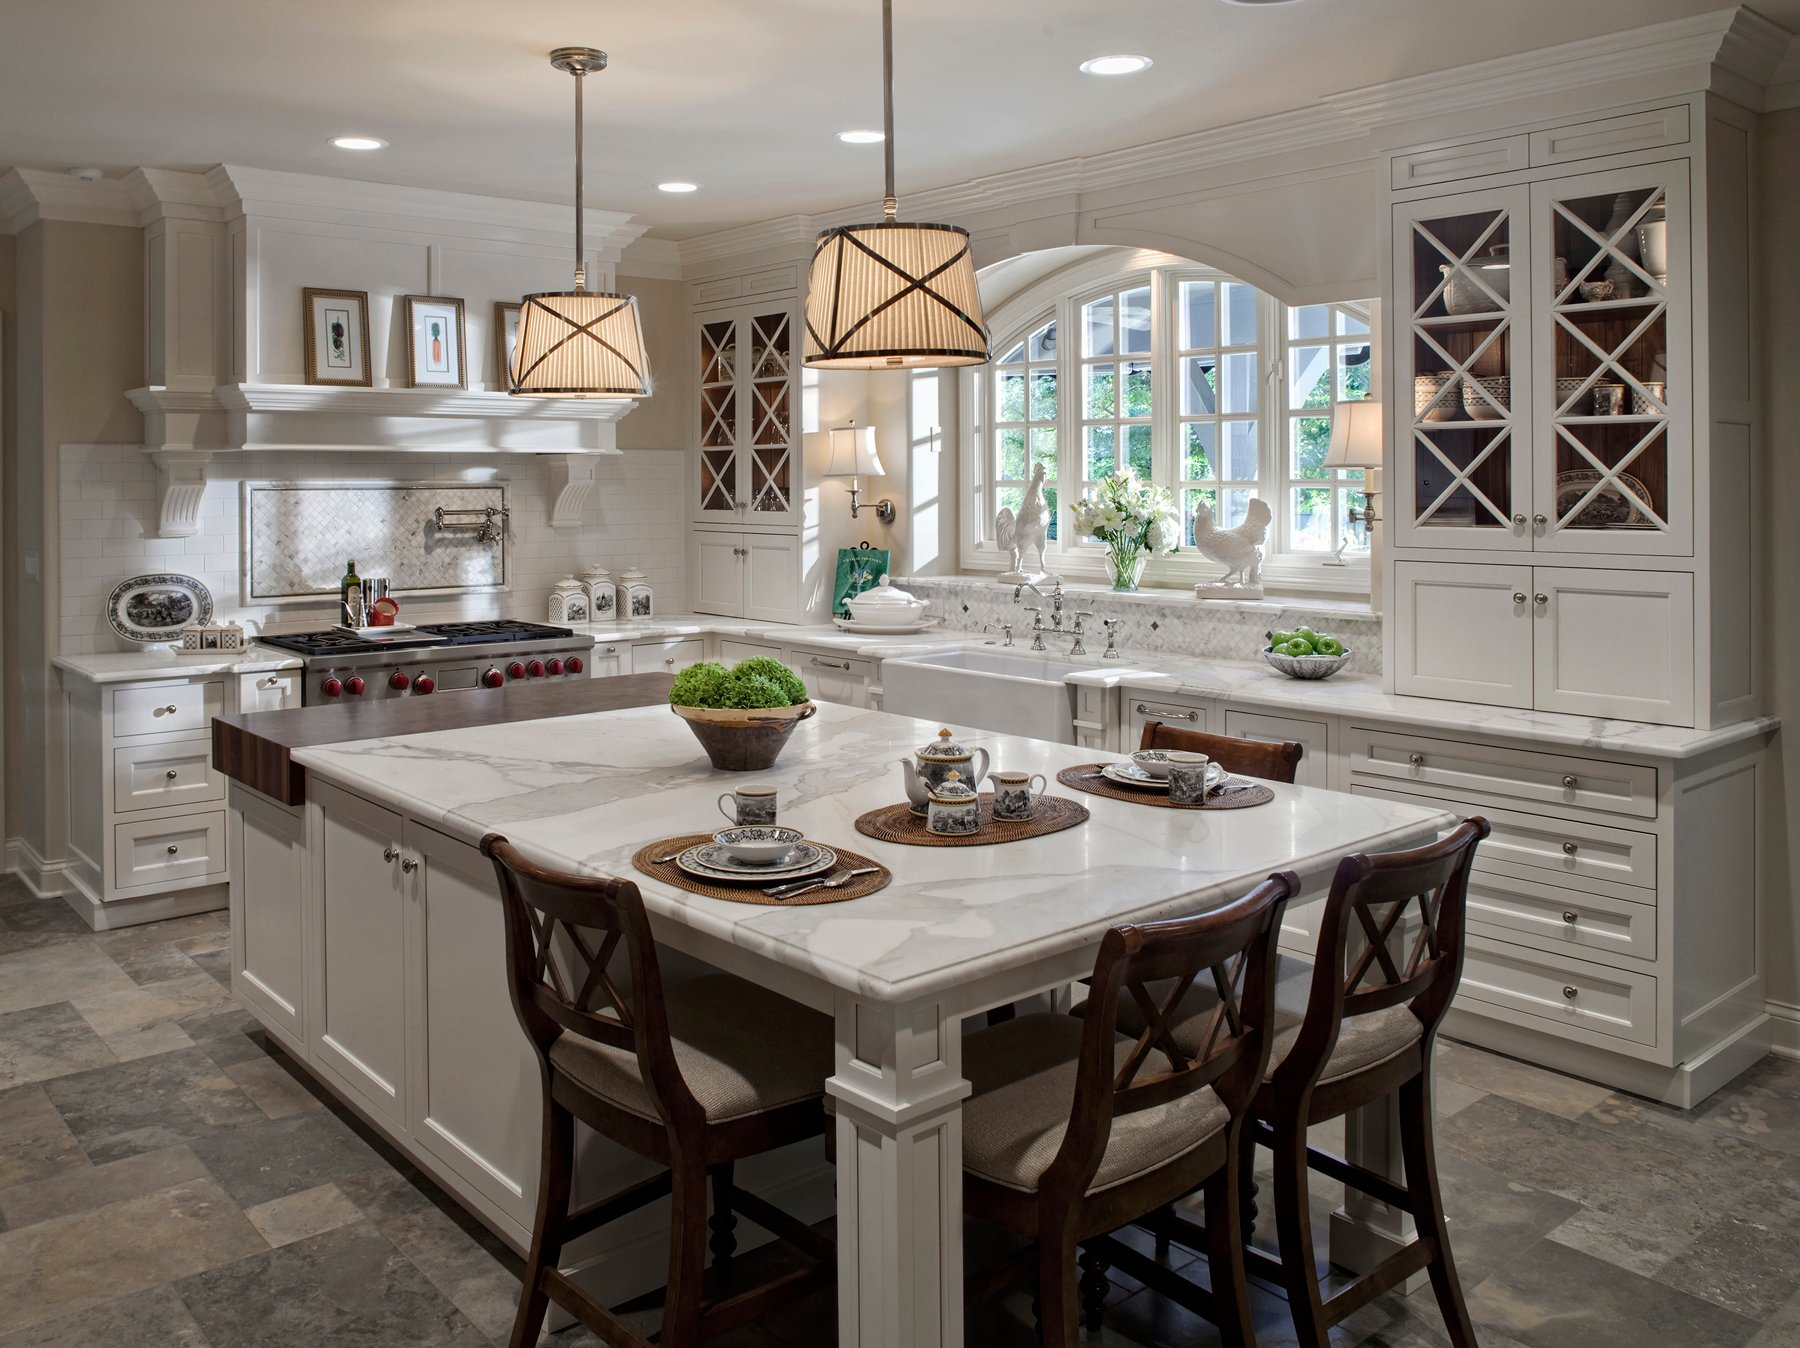 Wide open design allows this white kitchen to stand an immense marble topped island at center with wide stretches of tile flooring all around. Island features partial hardwood surface, while sink space and tile backsplash sit below a wide arched window.